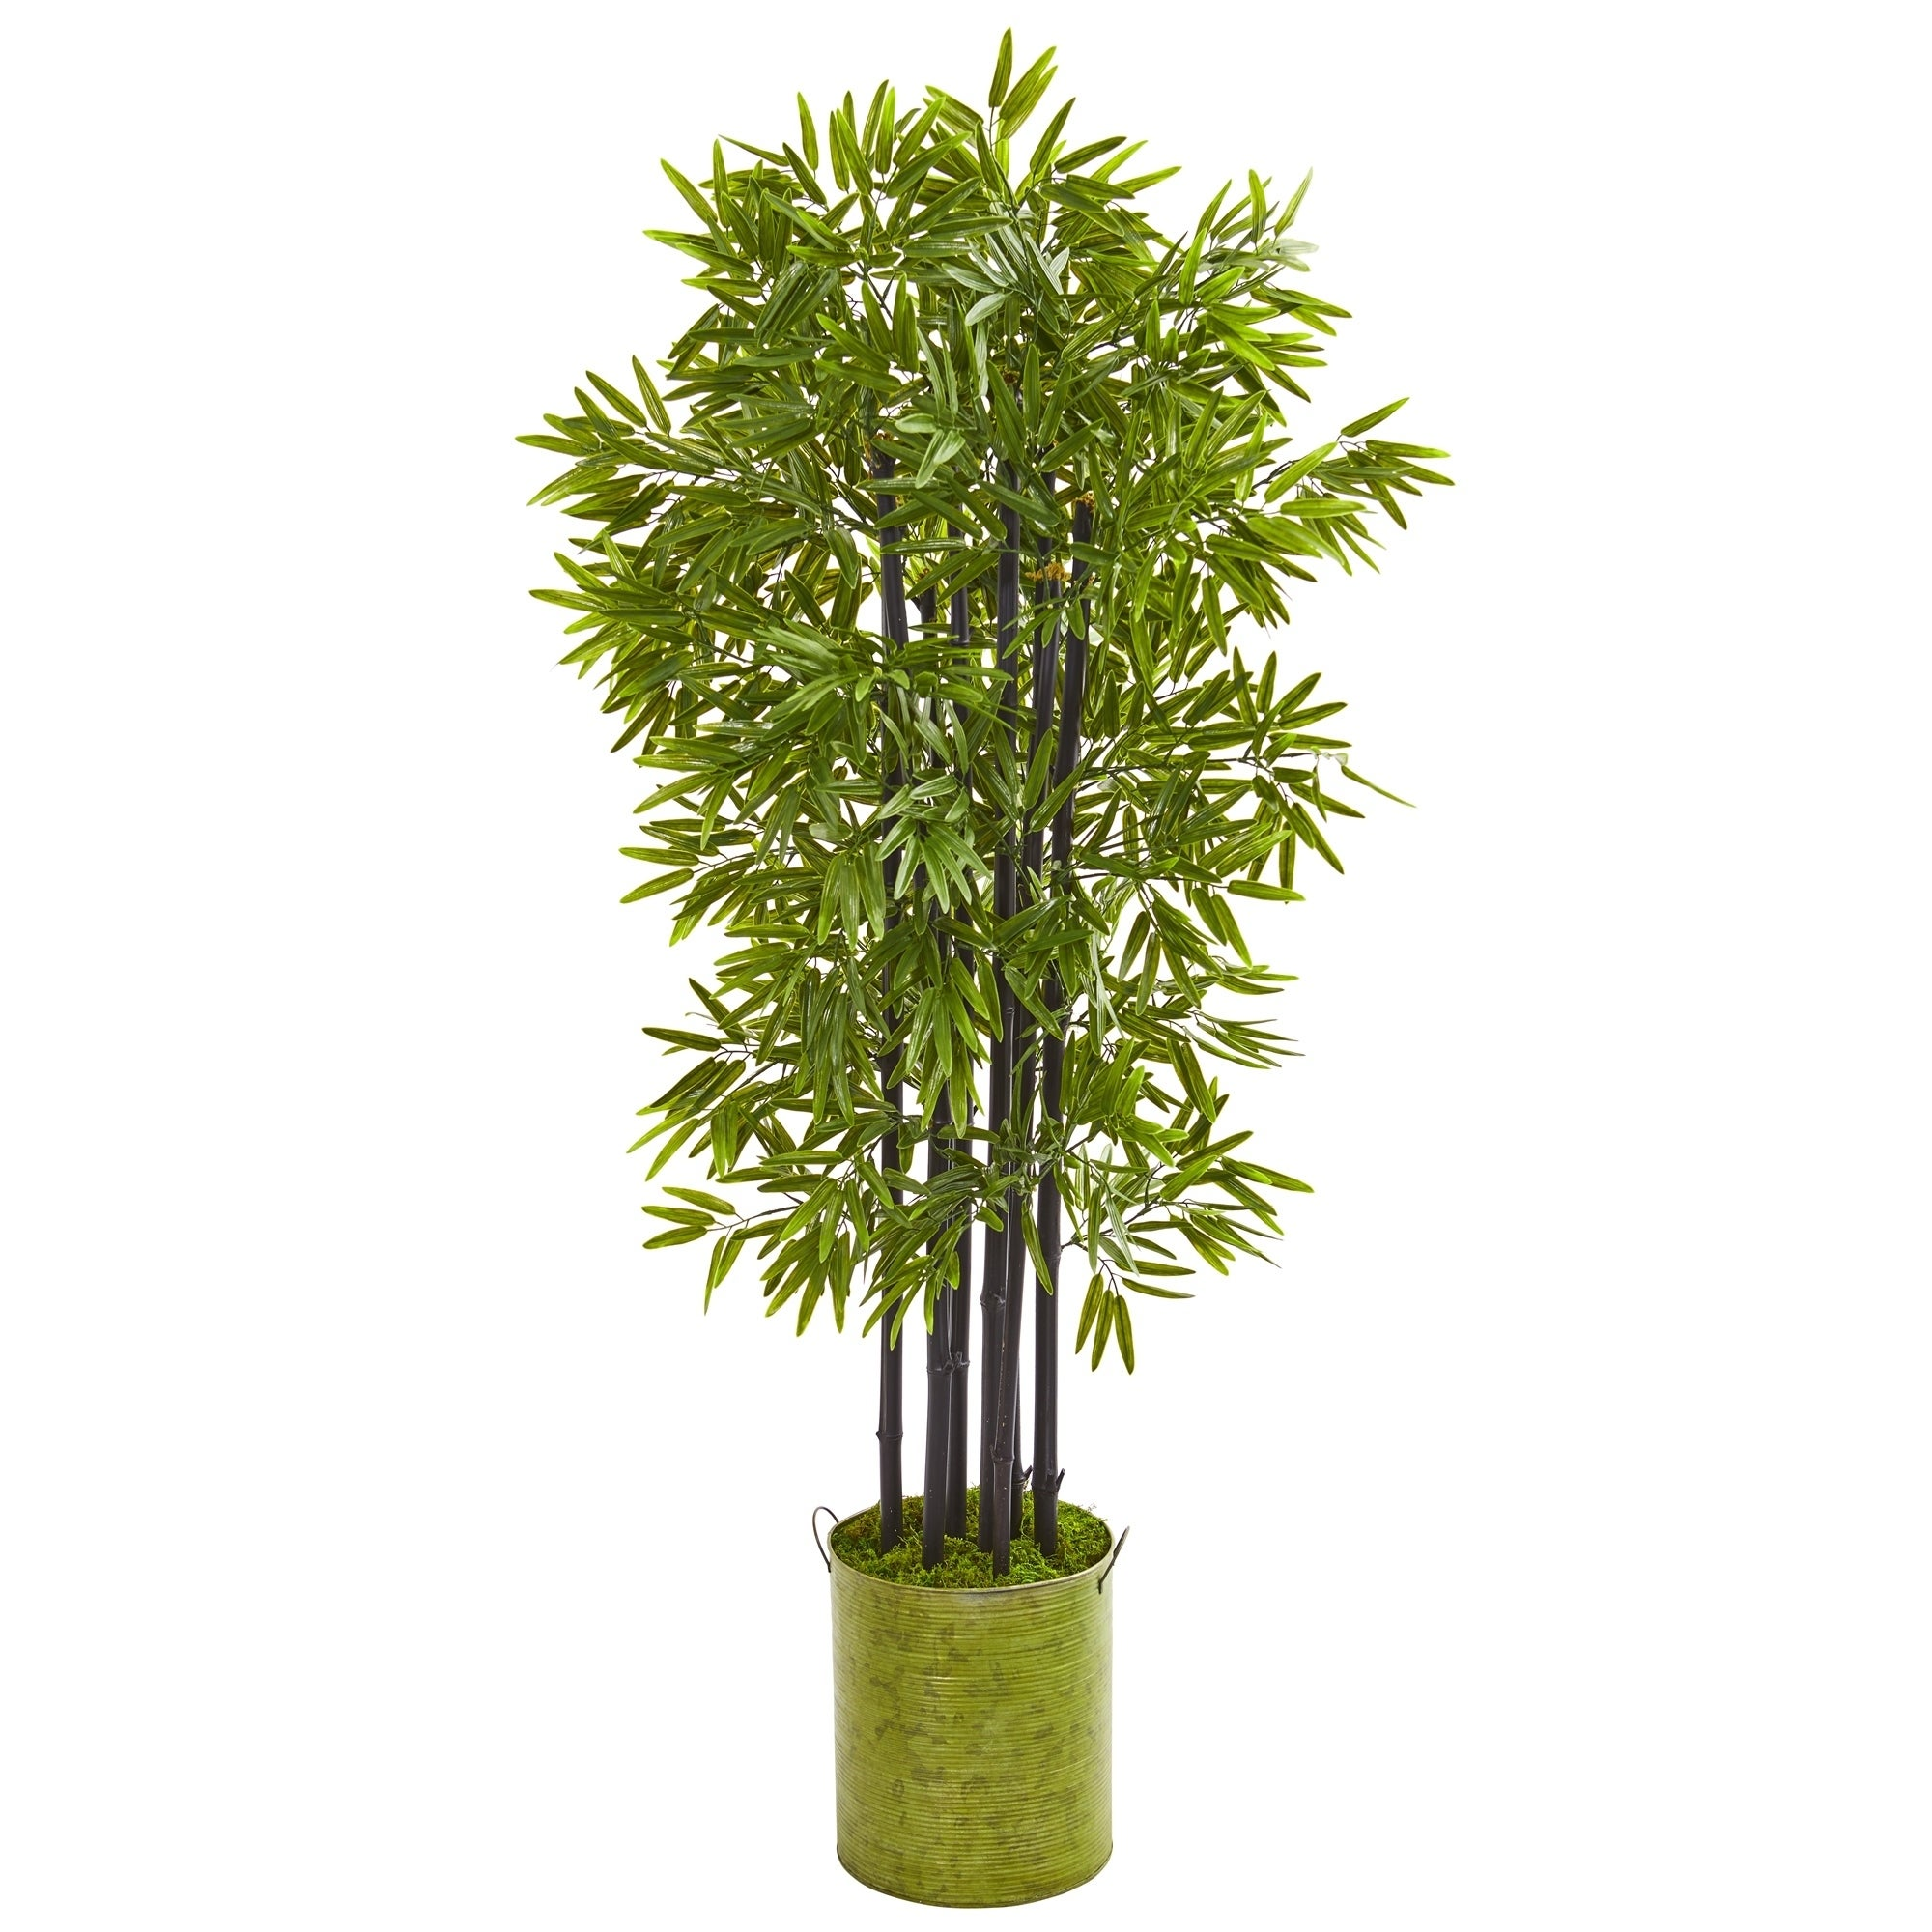 57 Bamboo Artificial Tree with Black Trunks in Green Planter UV Resistant (Indoor/Outdoor)